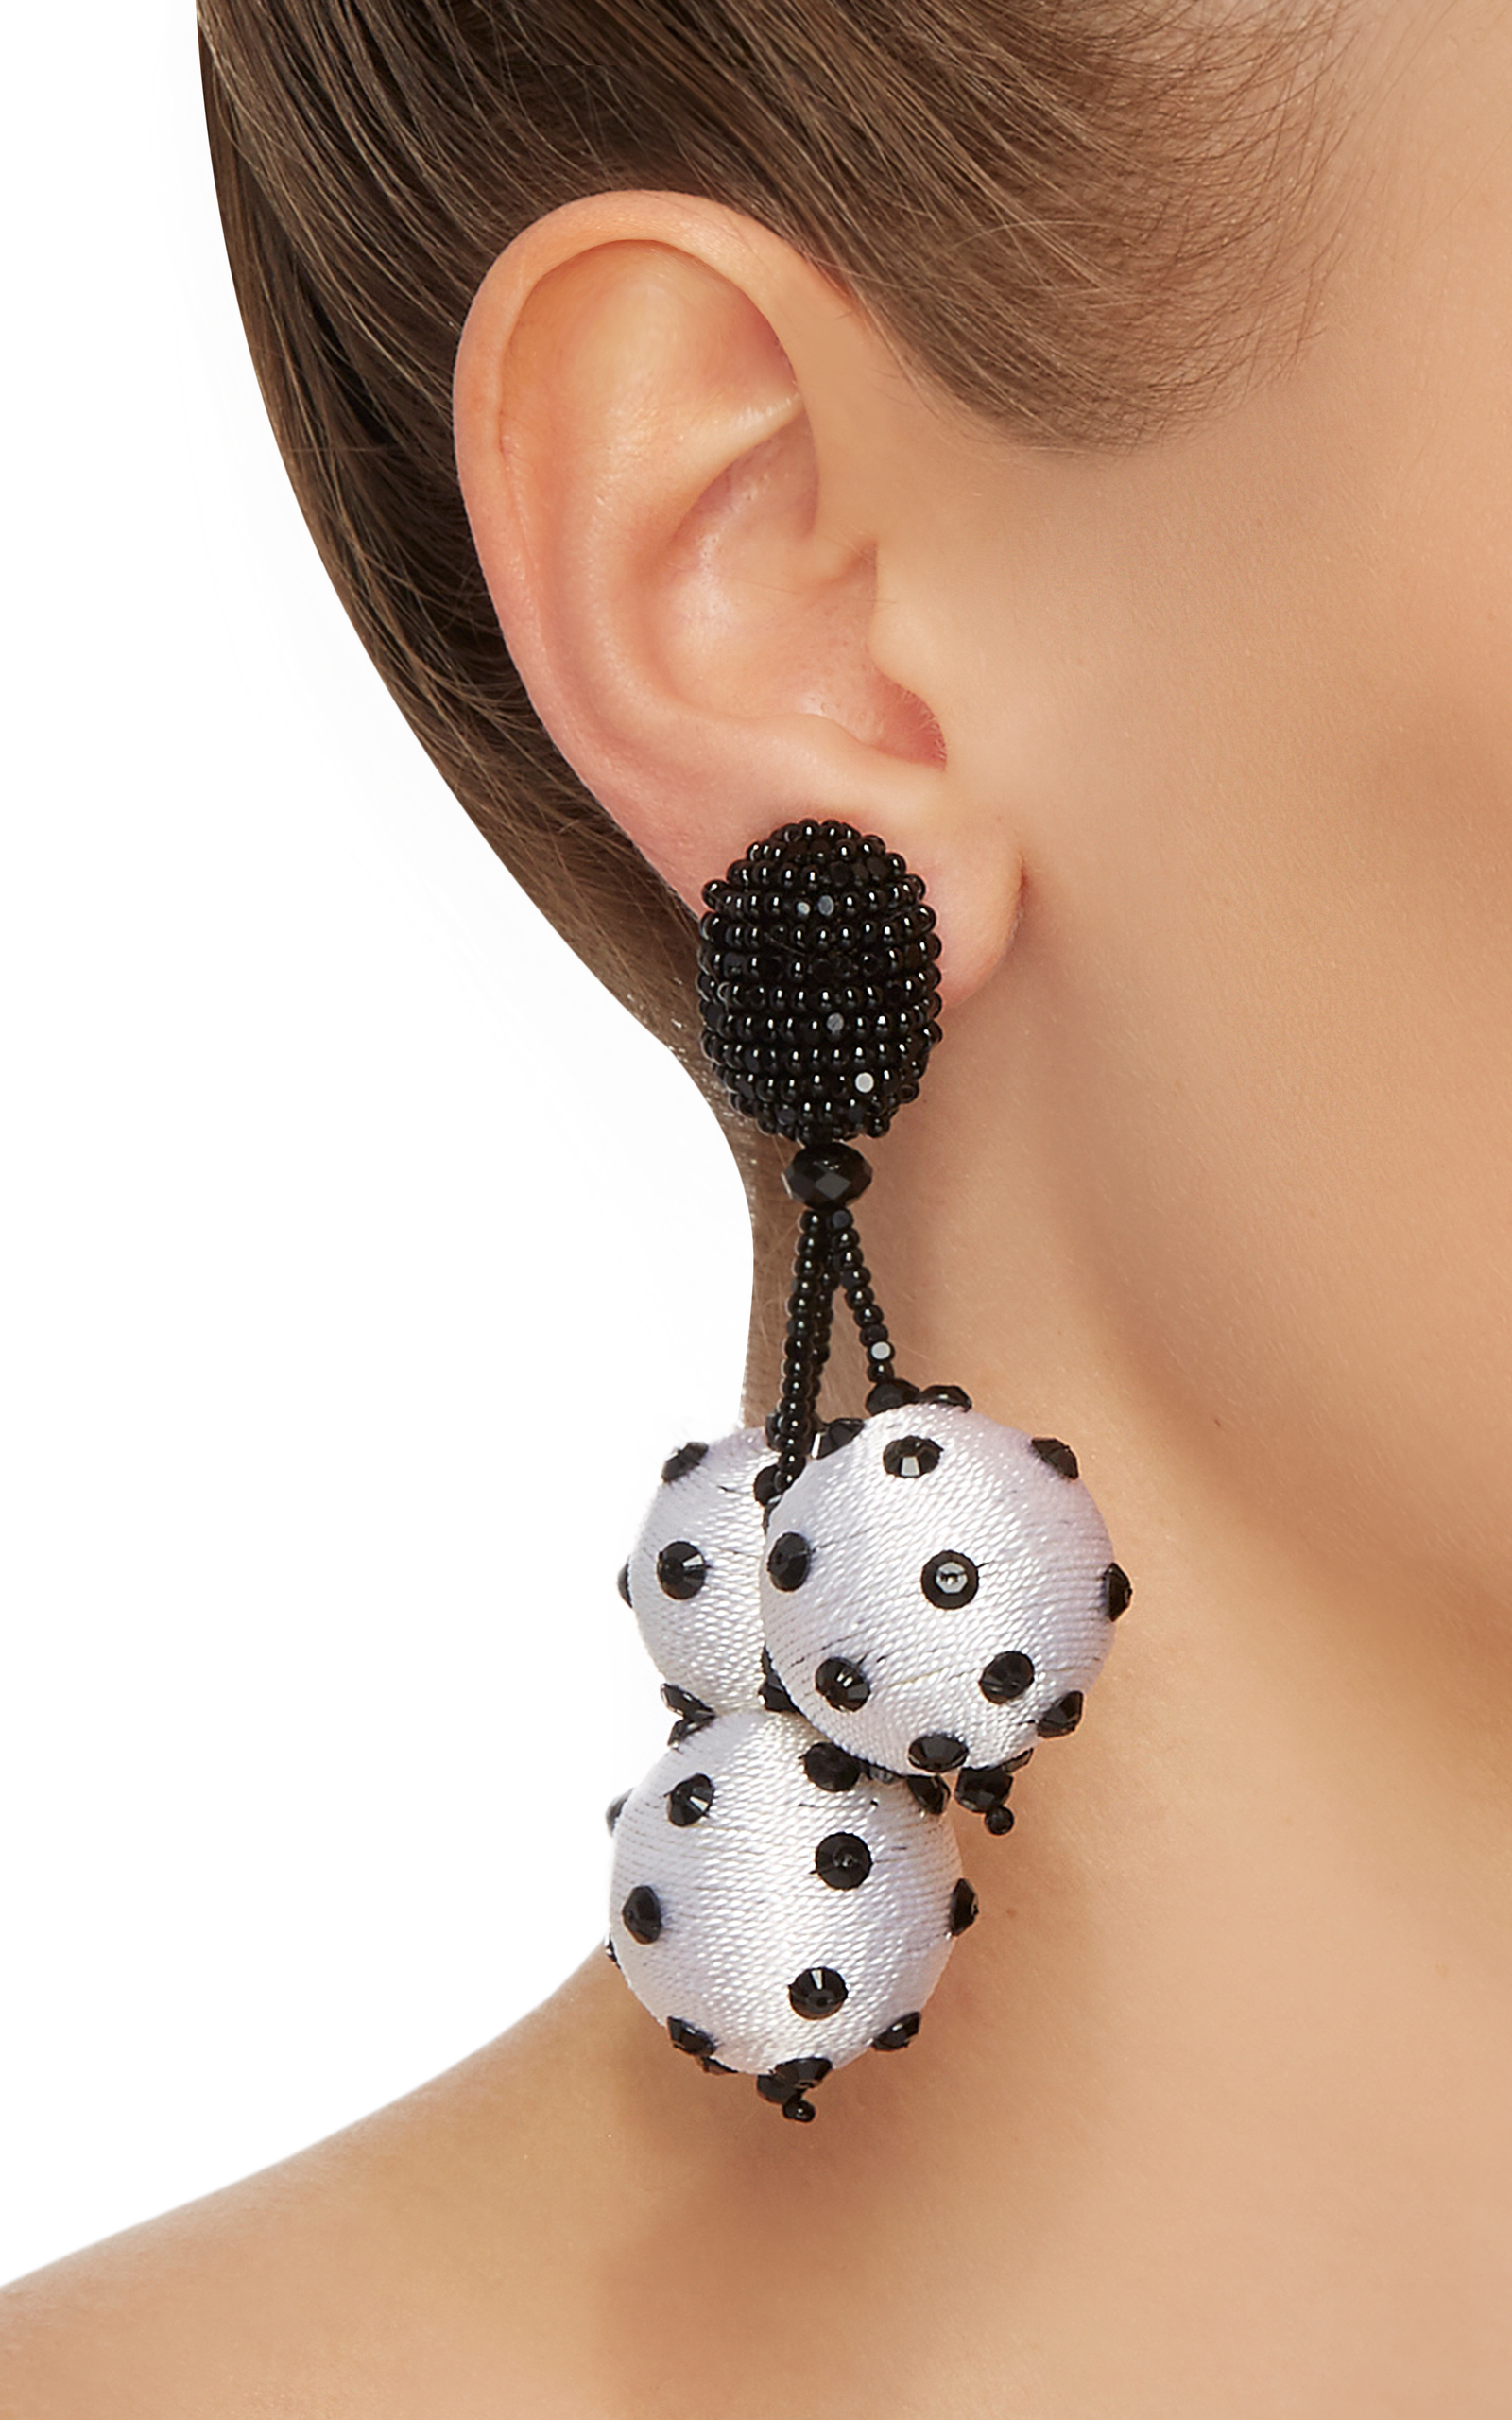 Triple Beaded Ball Earrings Oscar De La Renta AclVuzes